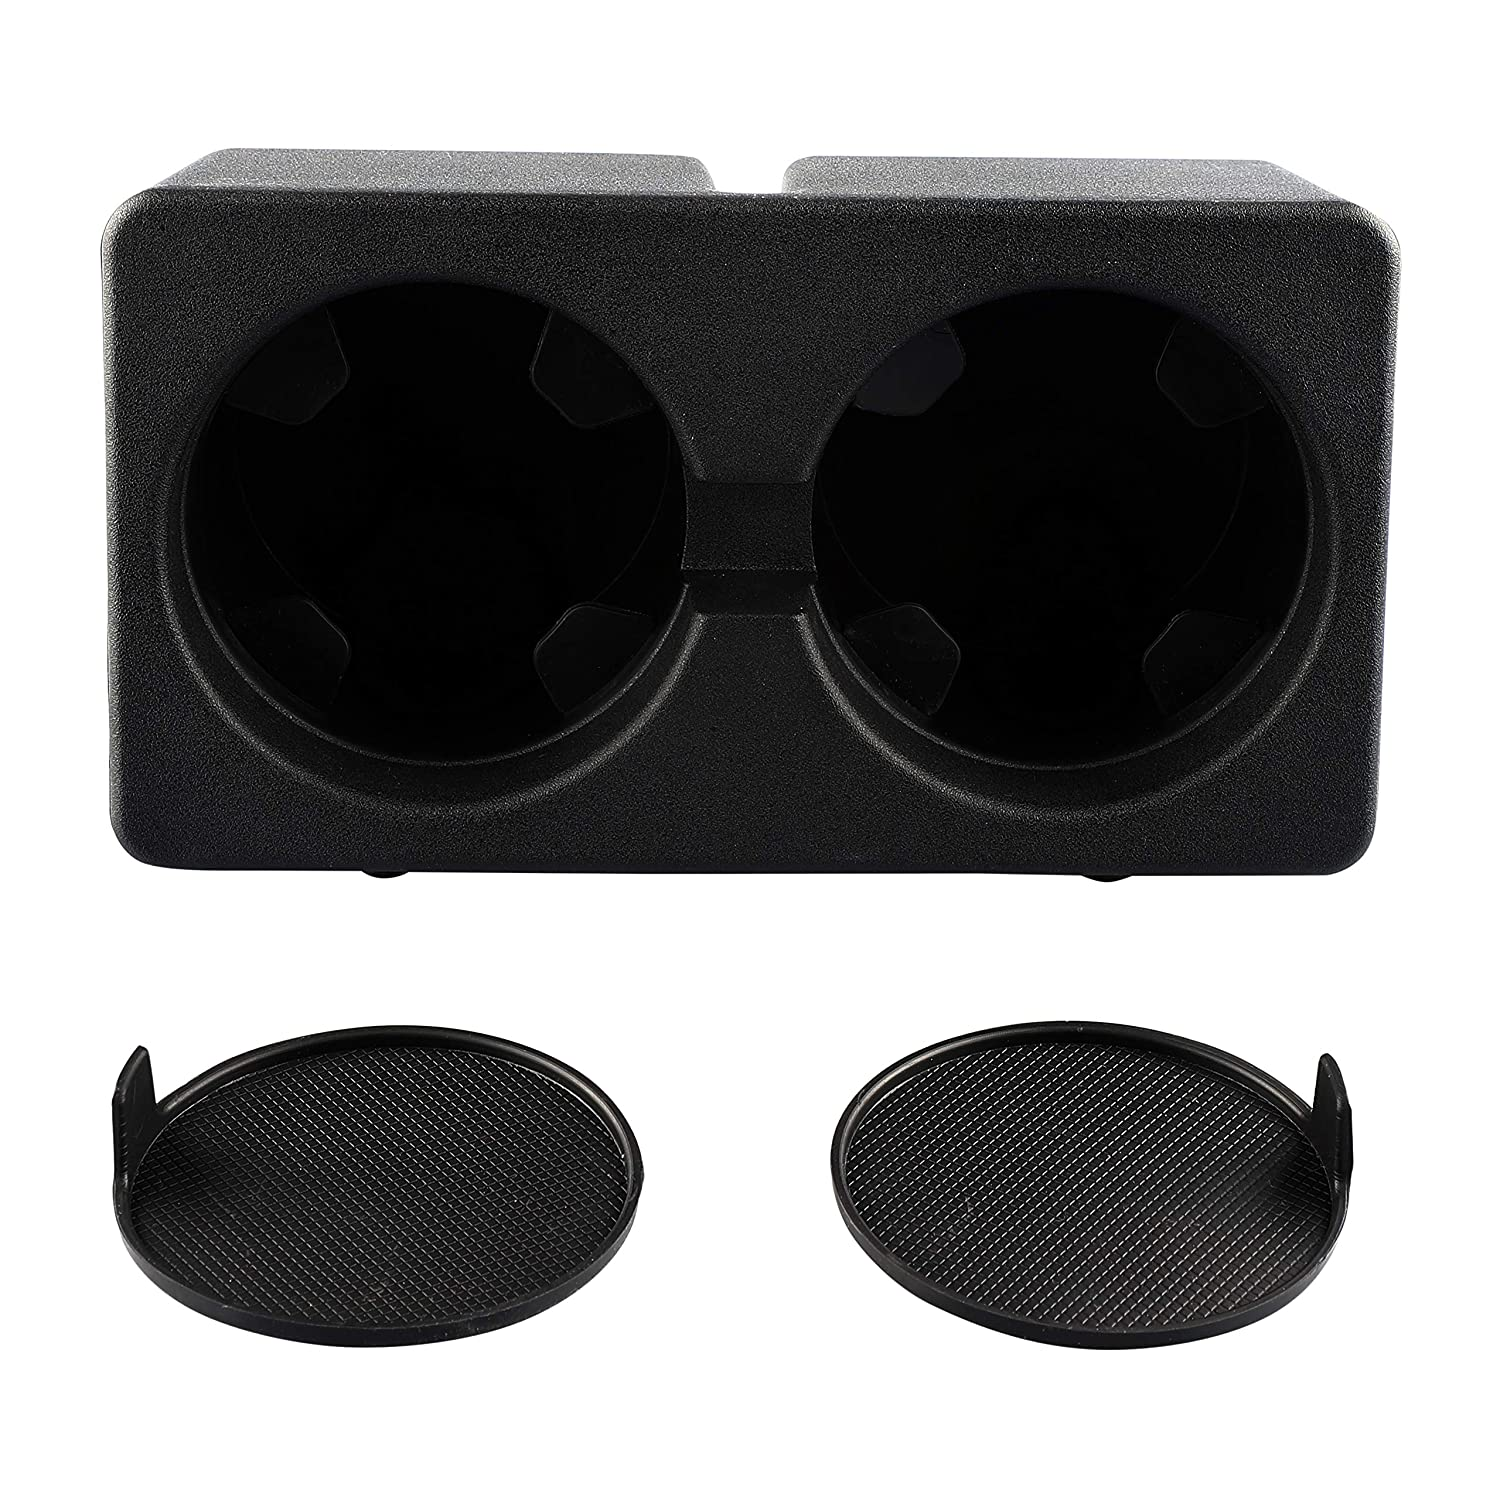 2007-2014 Suburban Replacement 19154712 Floor Mounted Center Console Beverage Drink I Sushiyi Gear Yukon Tahoe Sushiyi Dual Cup Holder Insert for Compatible with 2007-2013 Silverado Sierra 1500 2500HD 3500HD